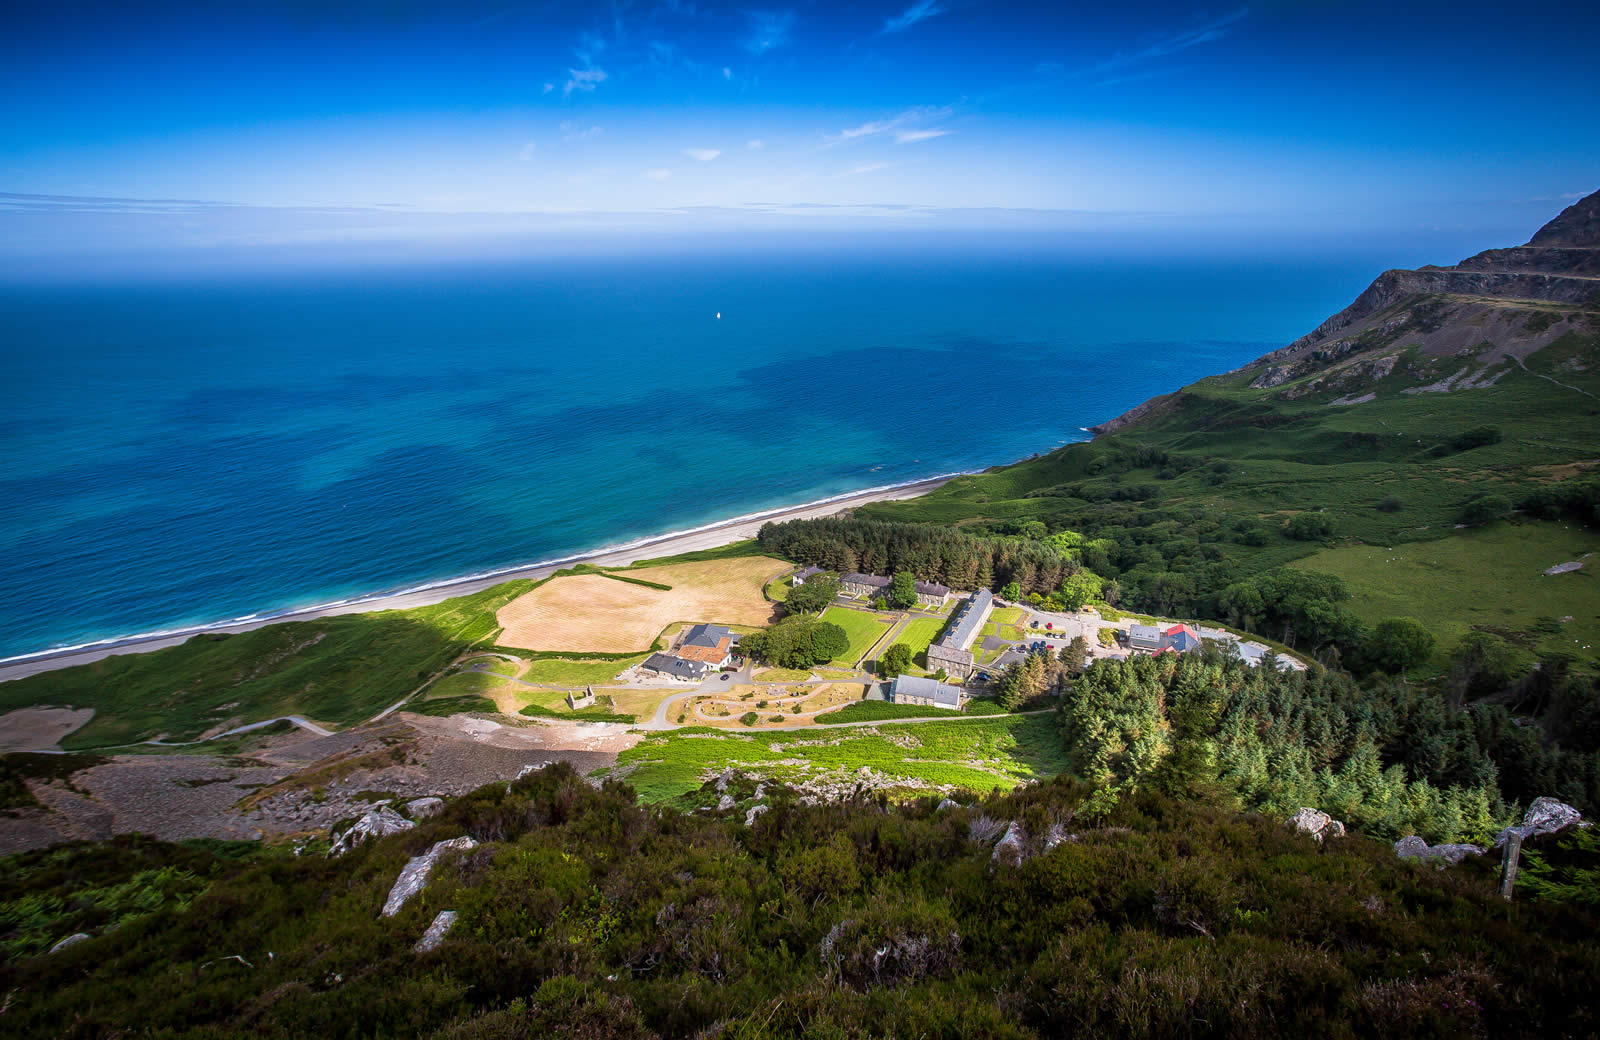 Nant Gwrtheyrn - Welsh Language Courses, Weddings, Self catering